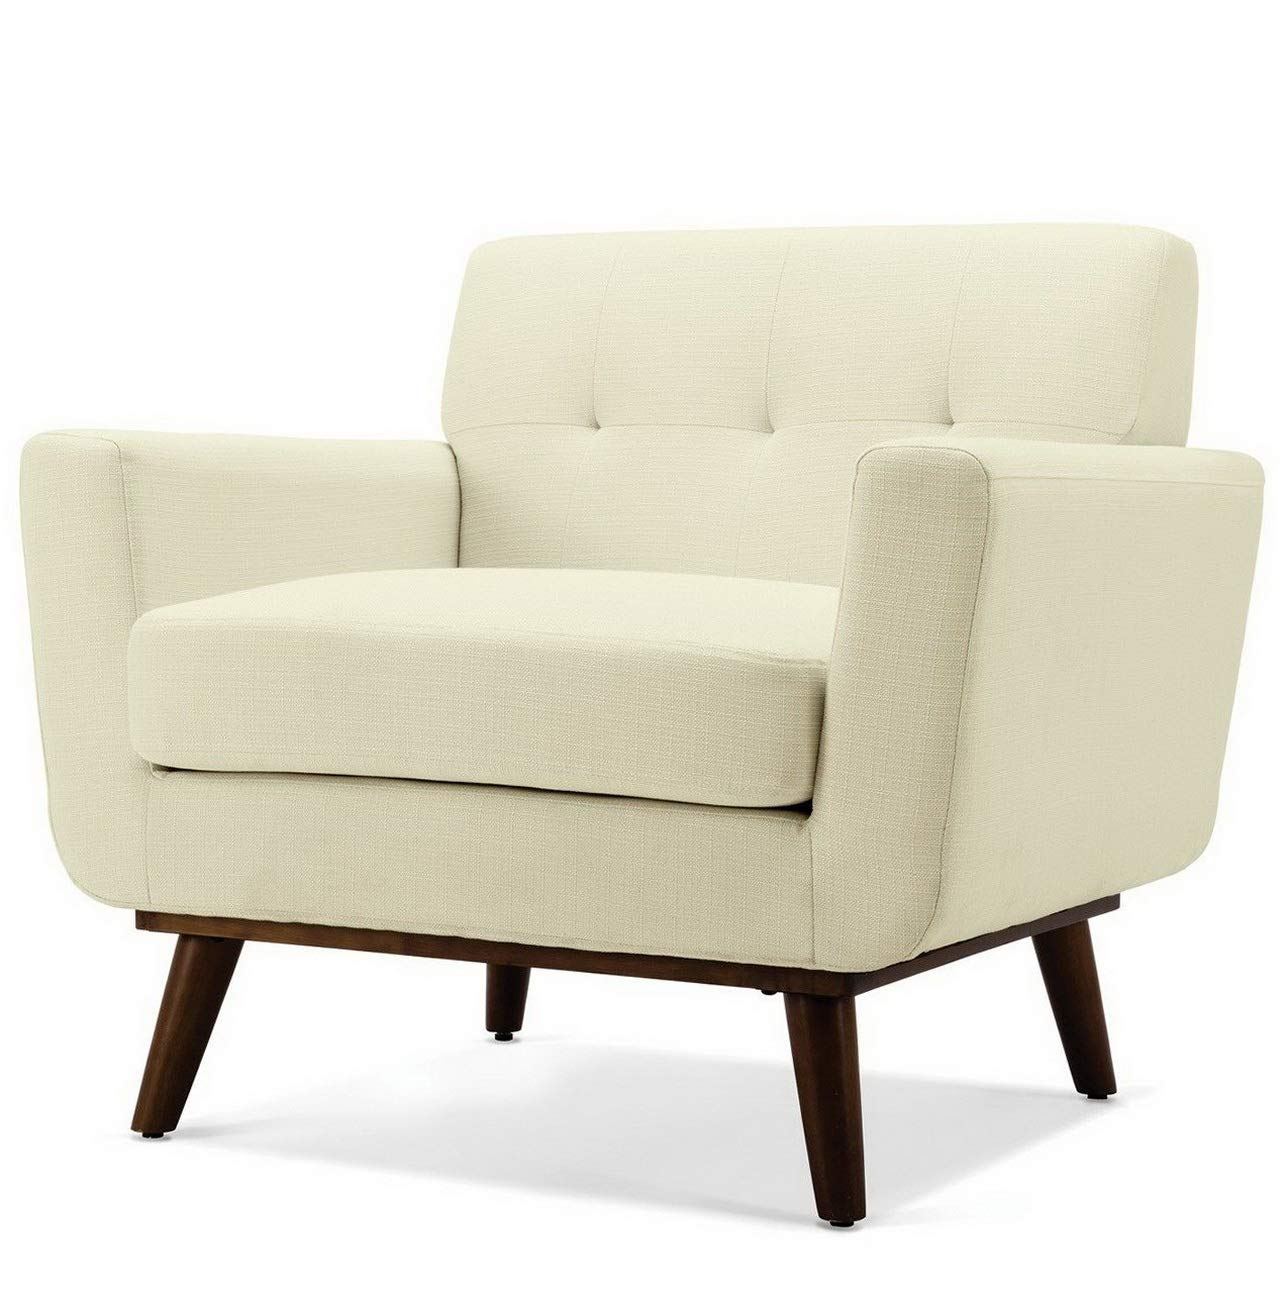 Amazon.com: Hebel Mid-Century Isaiah Upholstered Accent Arm Living ...